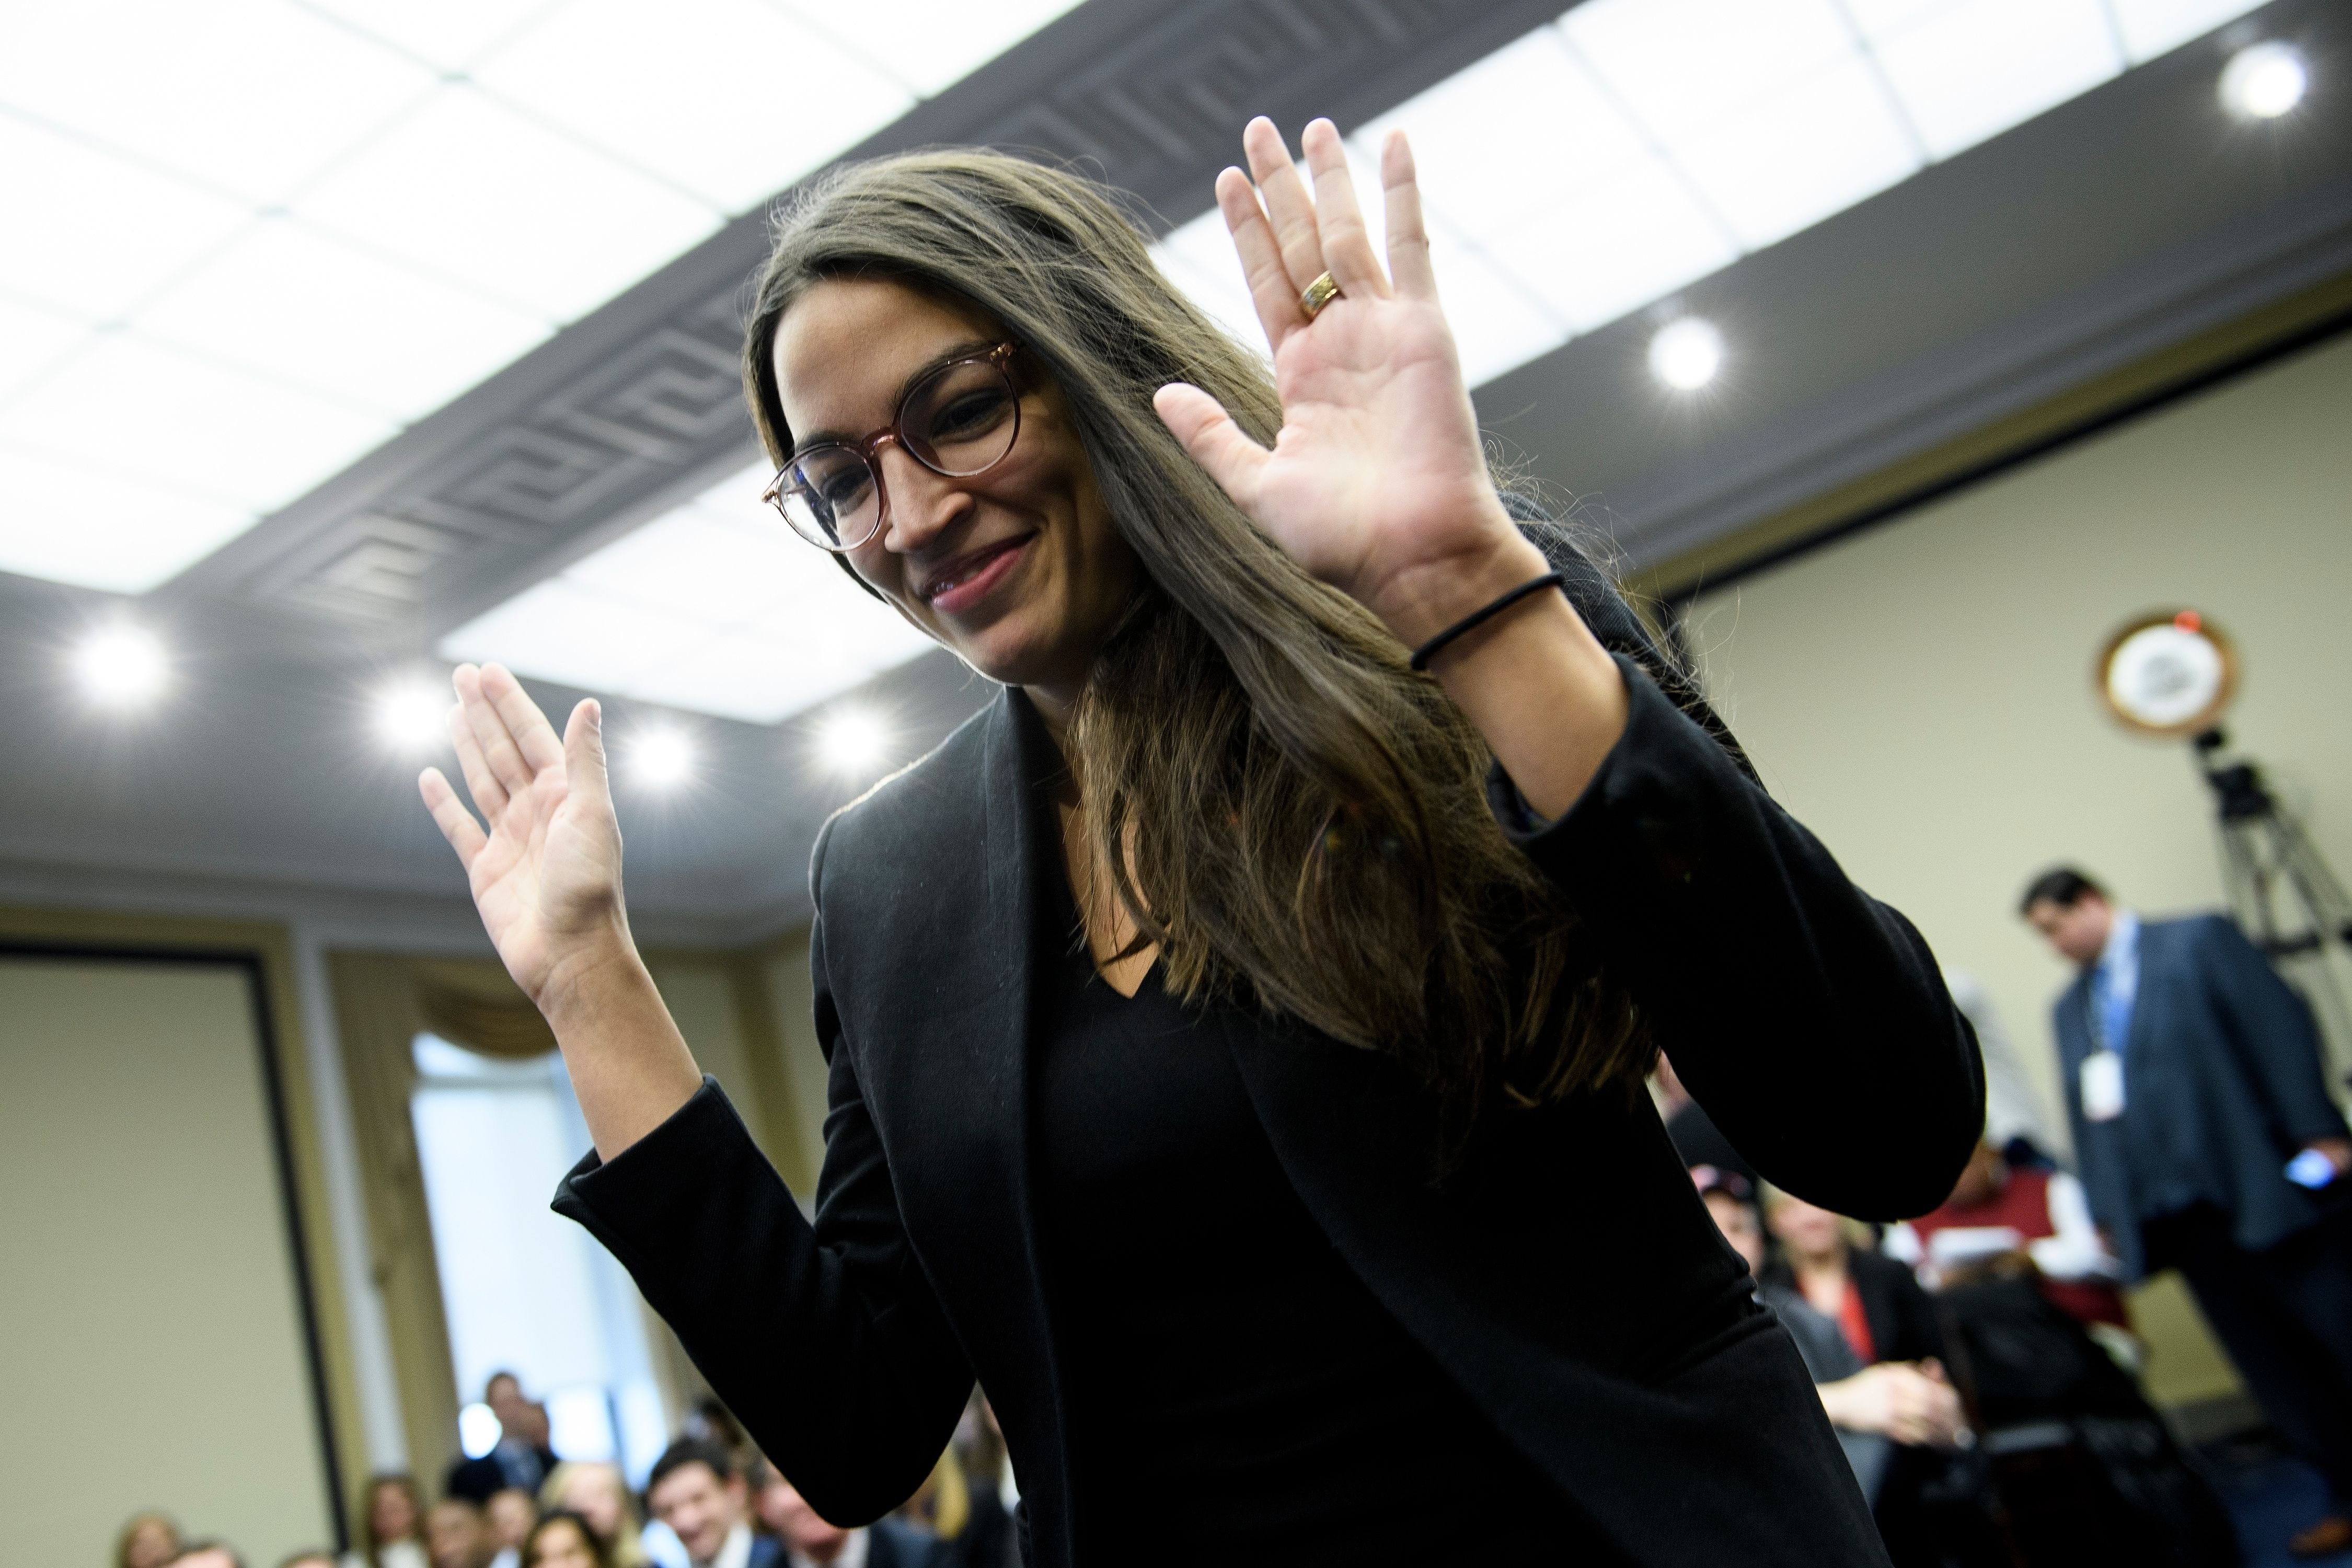 US Representative-elect Alexandria Ocasio-Cortez (D-NY) walks up to participate in drawing a lottery number for her new office on Capitol Hill November 30, 2018 in Washington, DC. (Photo: BRENDAN SMIALOWSKI/AFP/Getty Images)